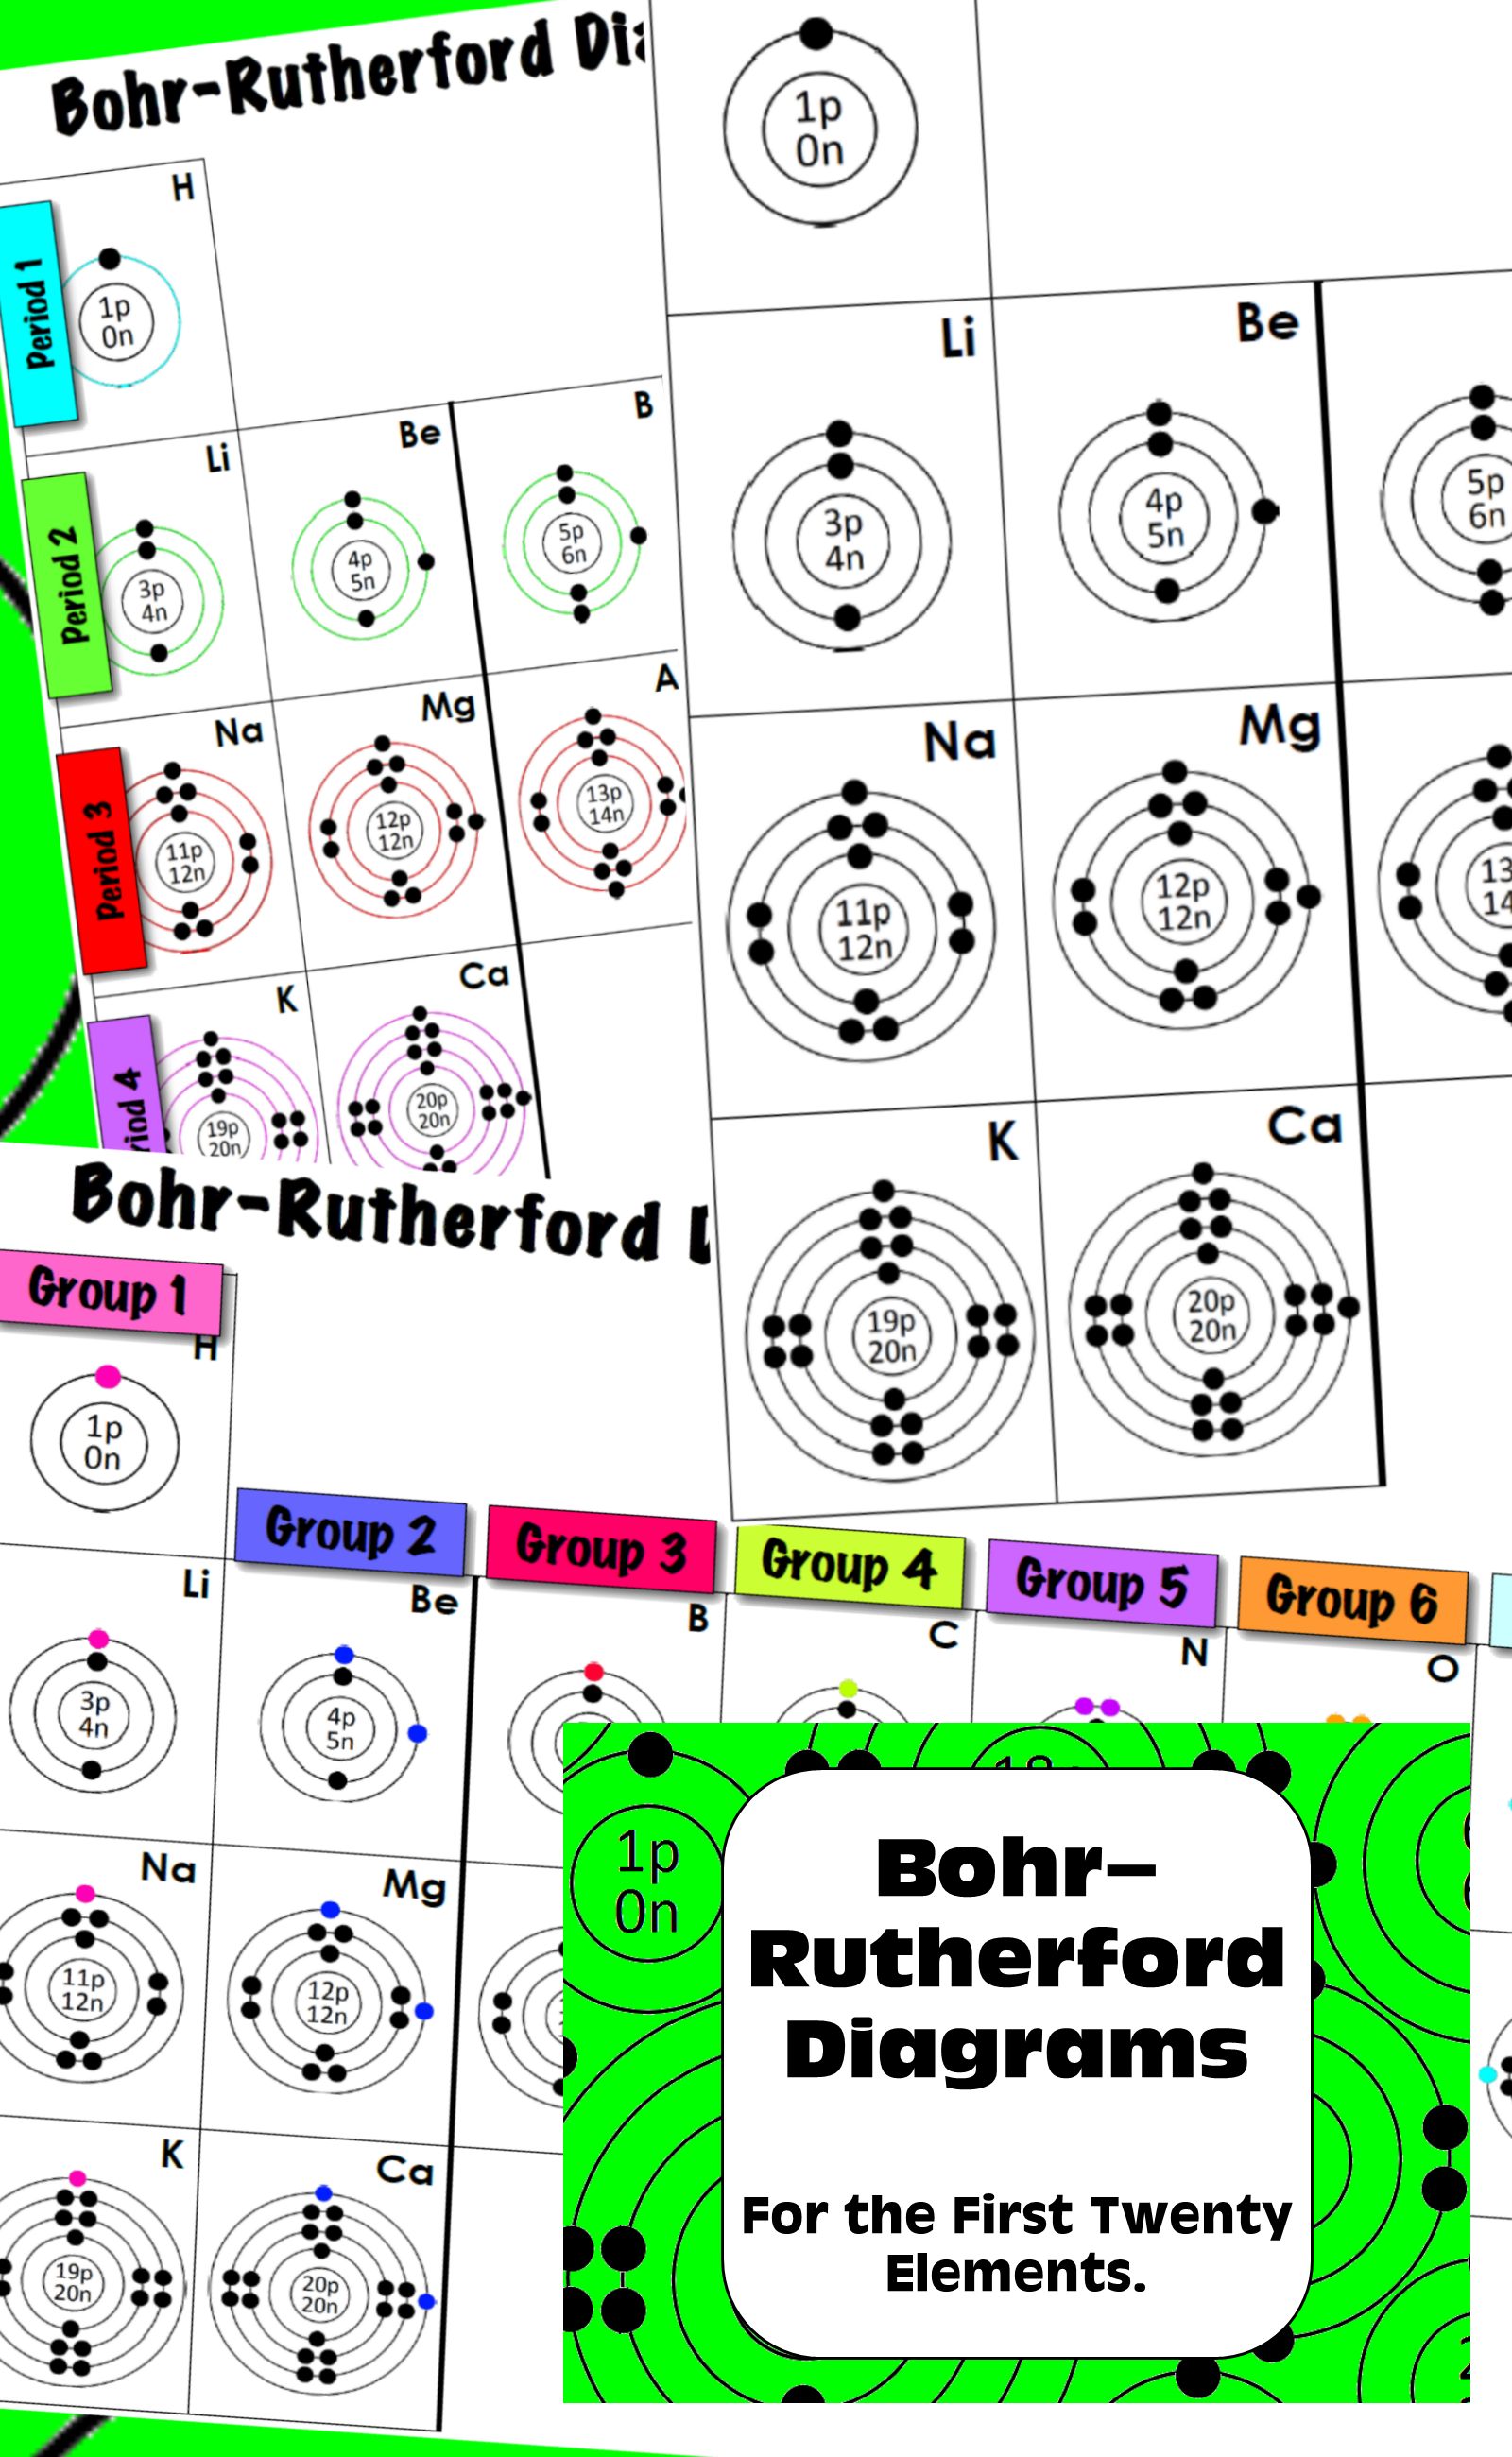 hight resolution of bohr rutherford diagrams for first twenty elements student graphical organizer color coded answers elements periodictable bohr rutherford chemistry